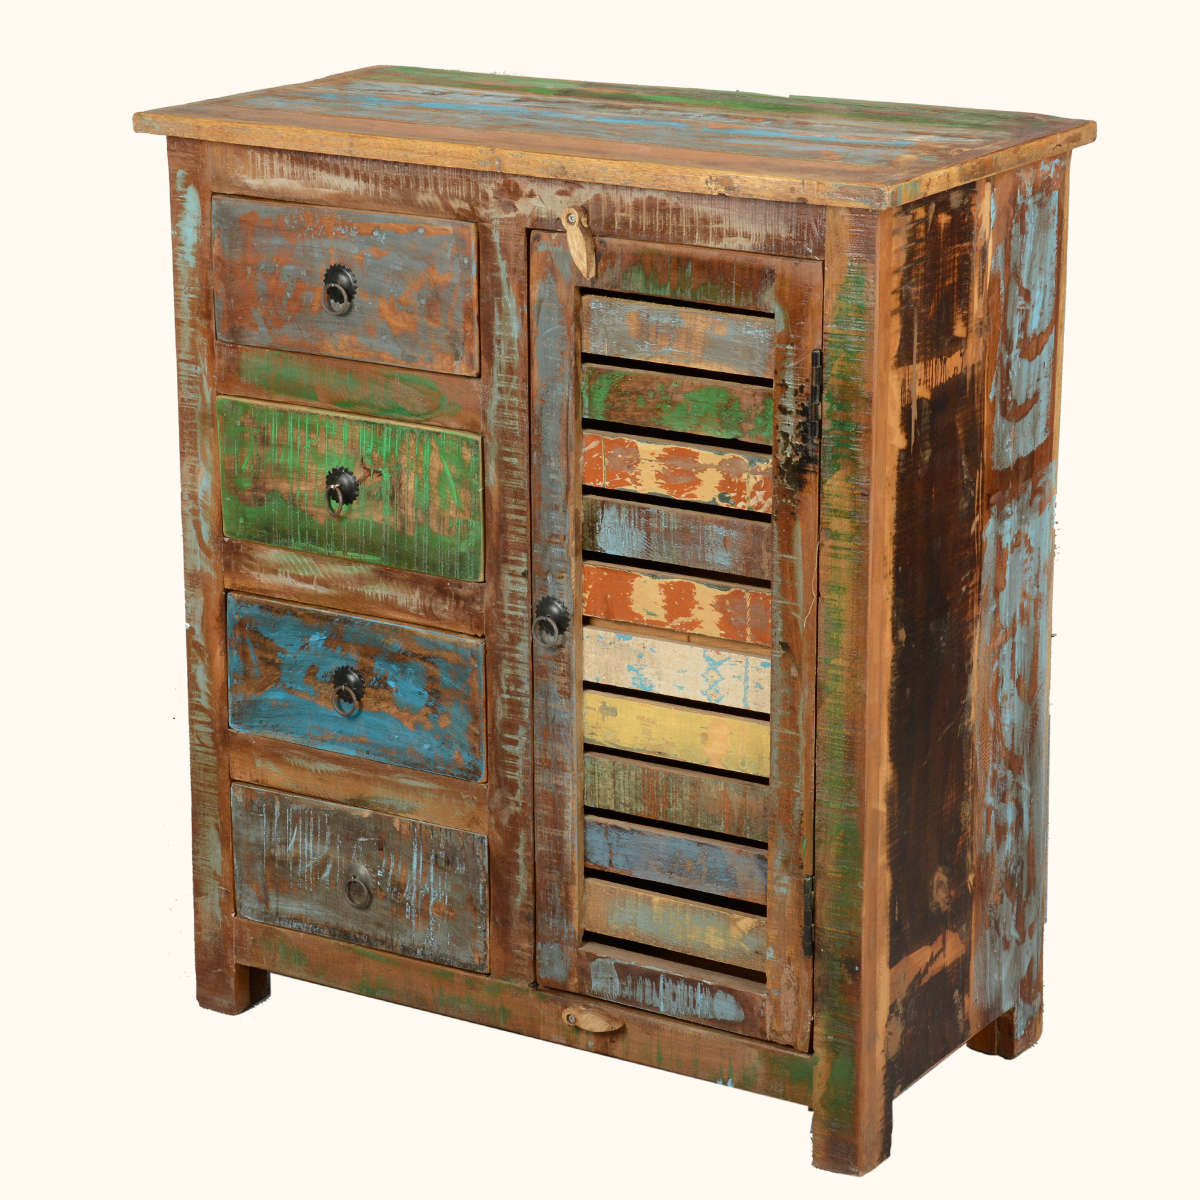 Reclaimed wood distressed rustic kitchen cabinet sideboard